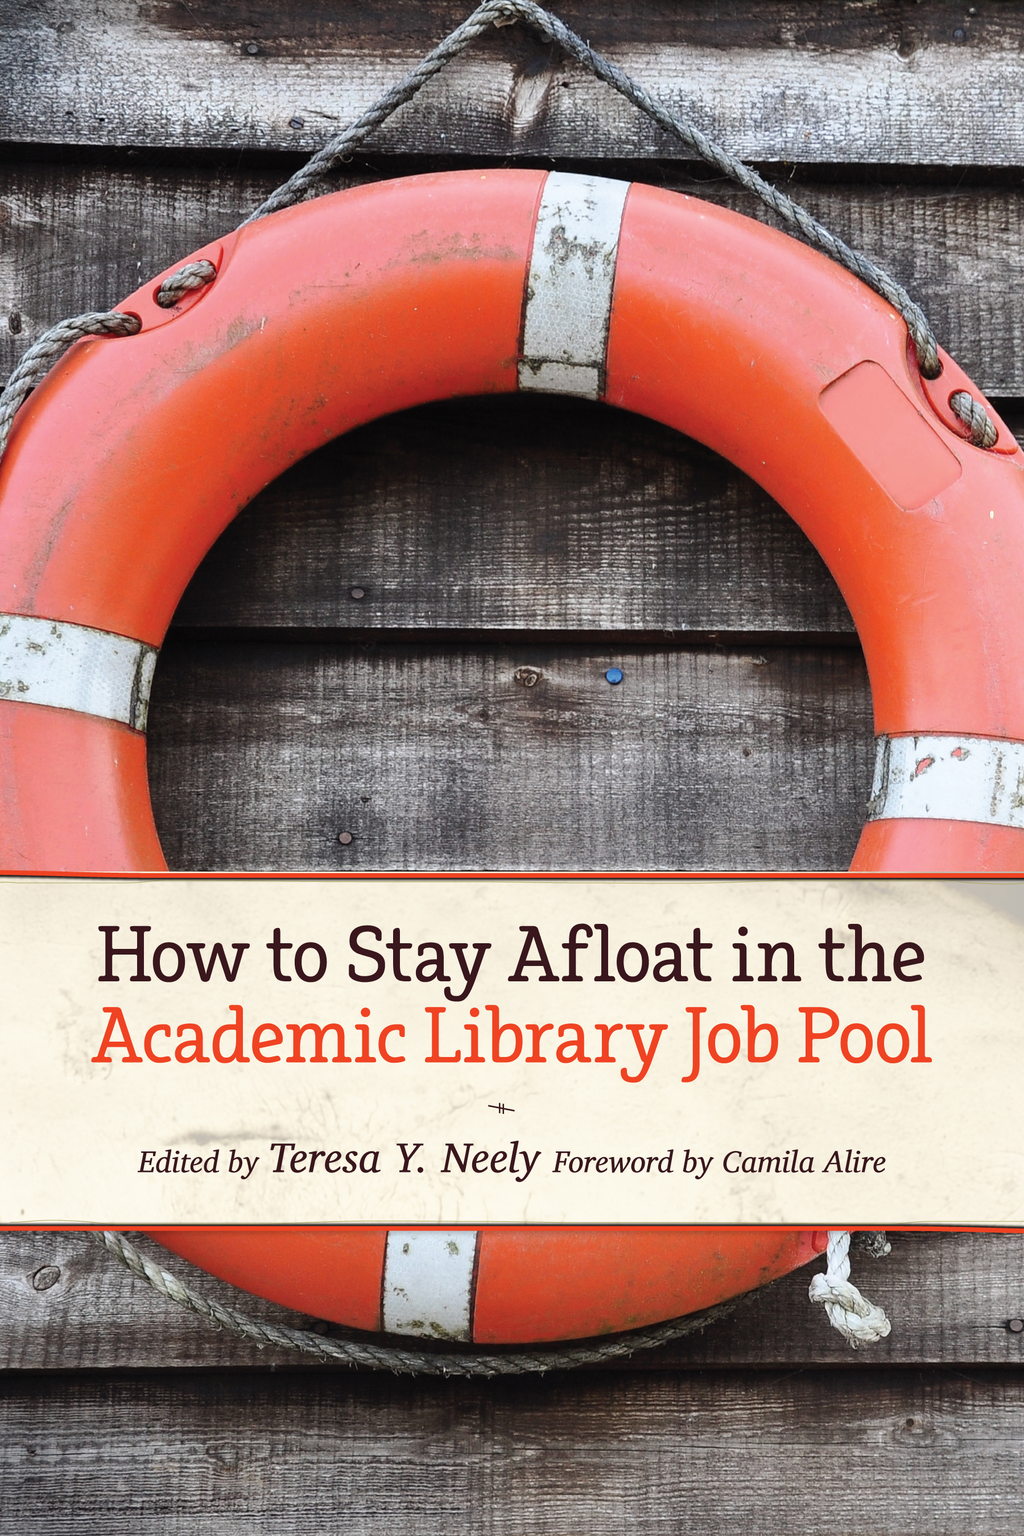 How to Stay Afloat in the Academic Library Job Pool By: Camila A. Alire,Teresa Y. Neely